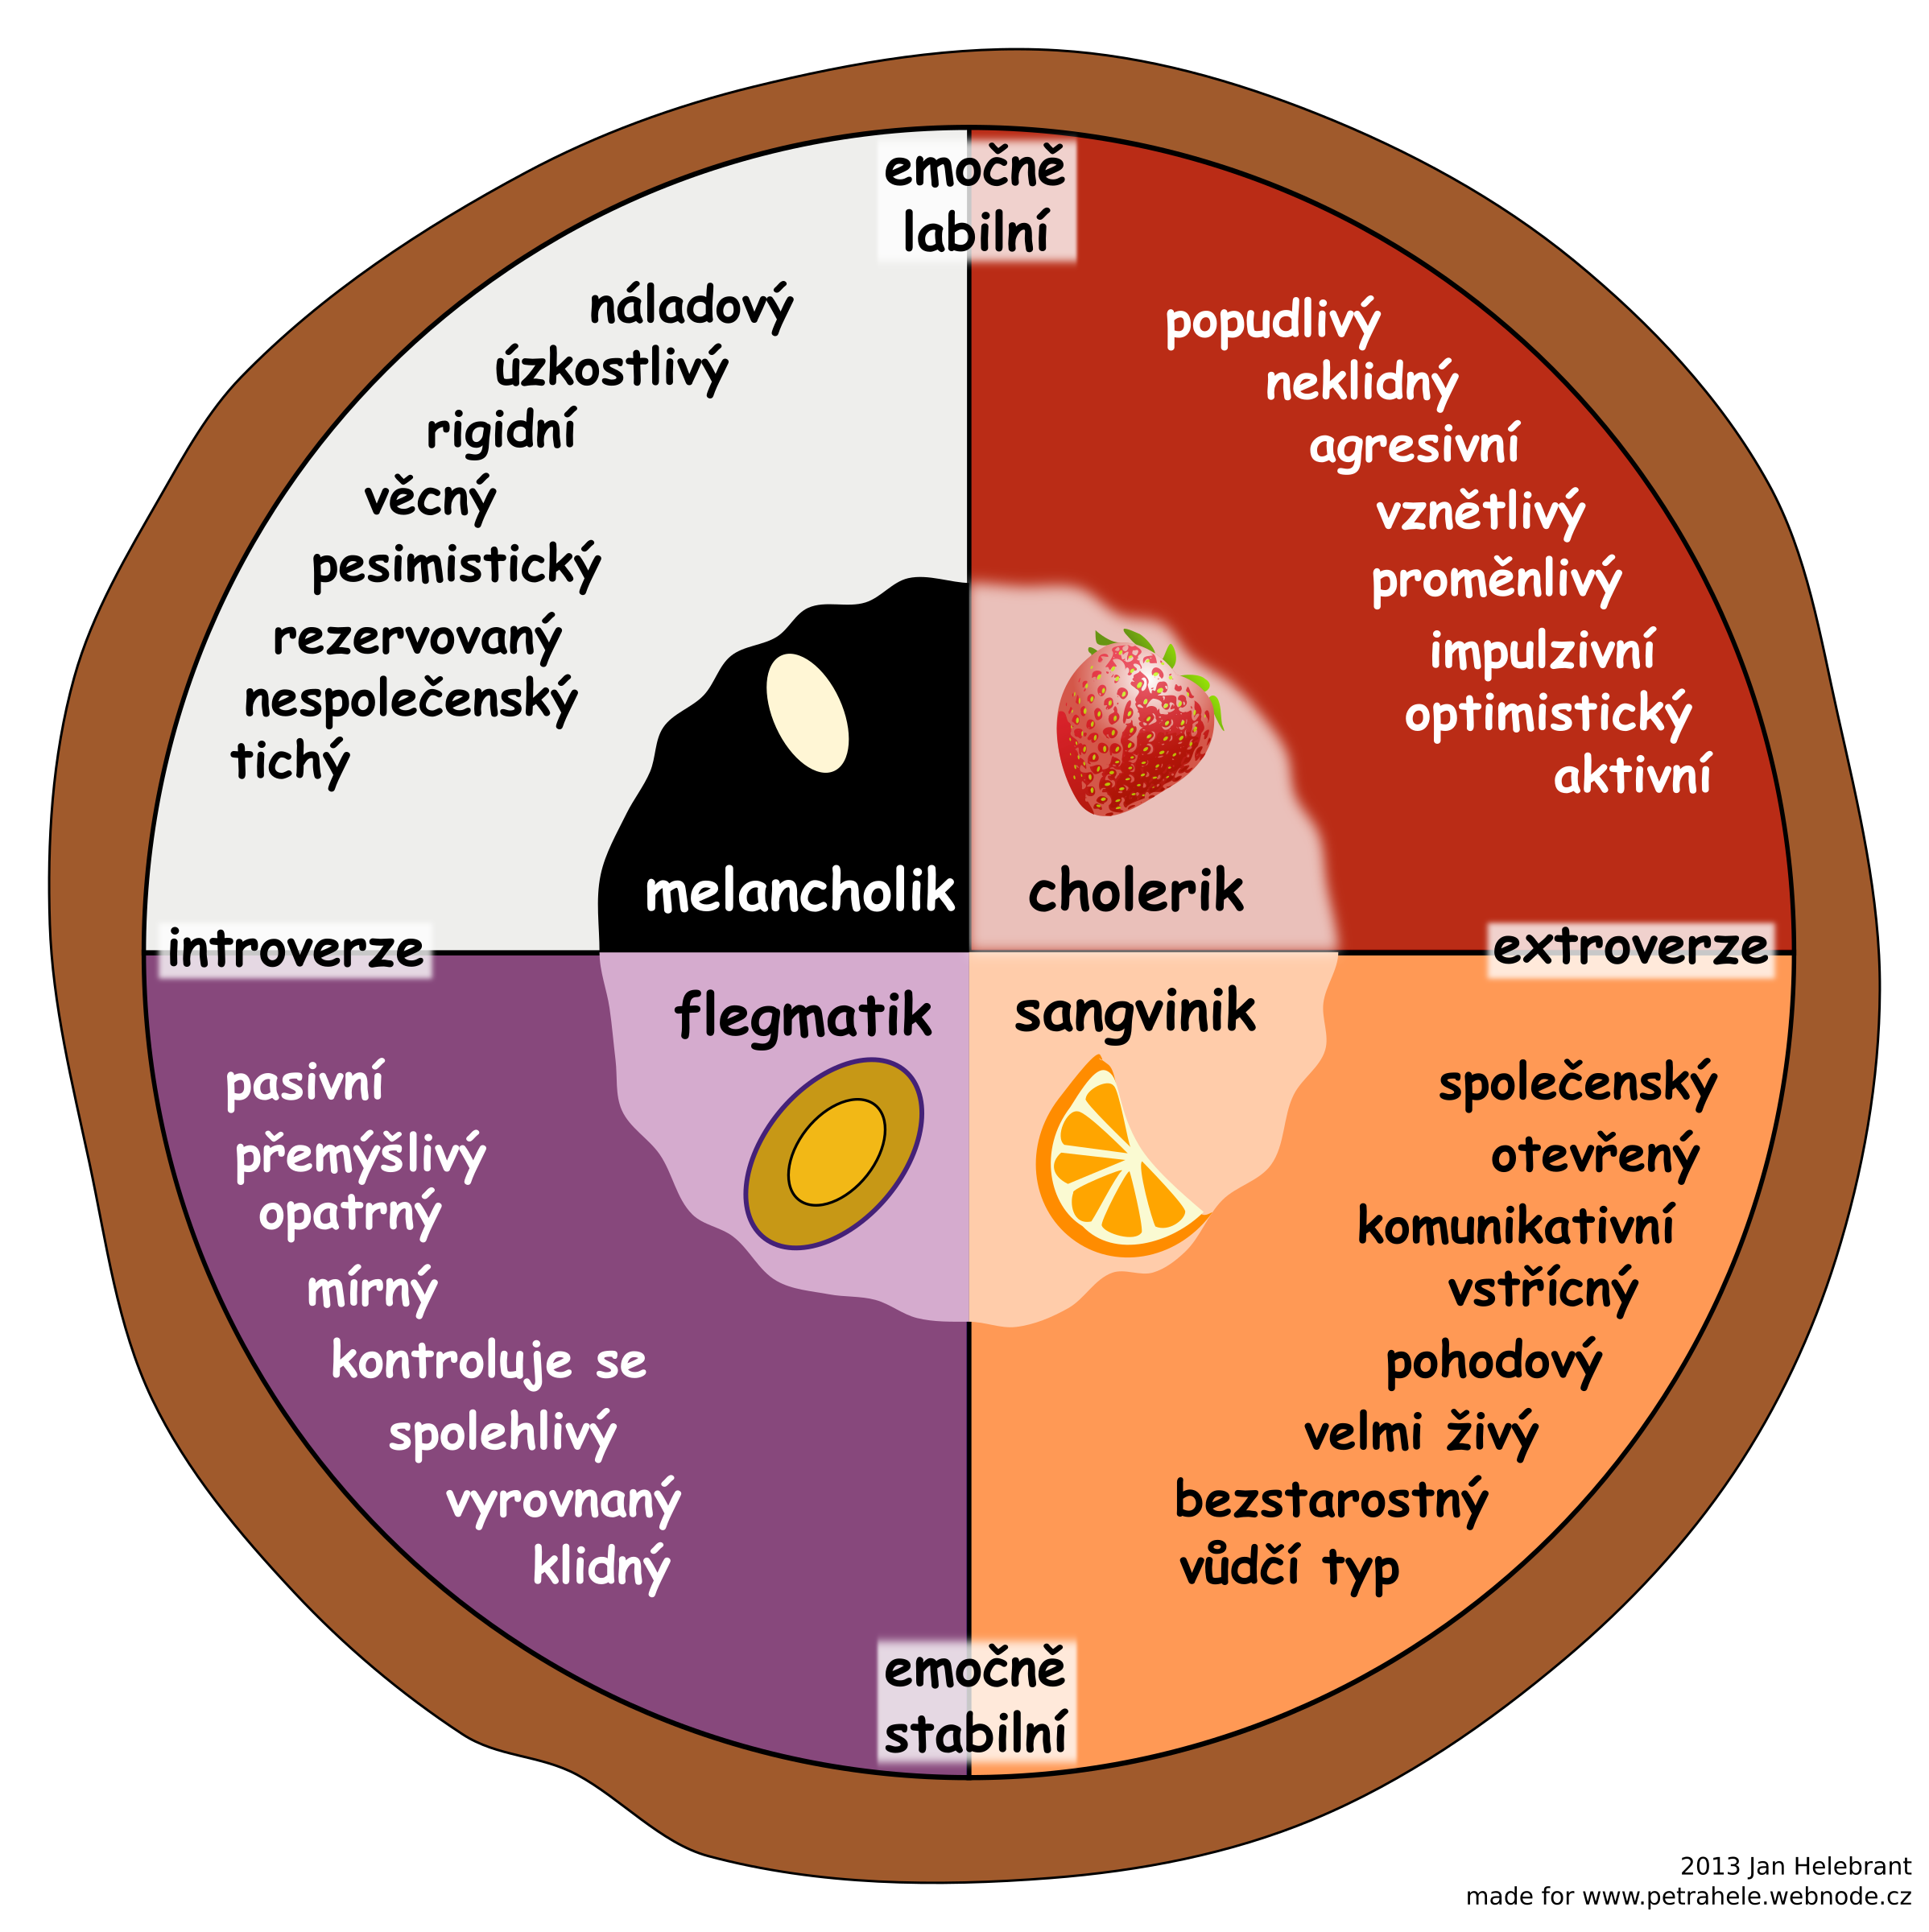 Temperament pie chart according to Eysenck (Czech) by Juhele